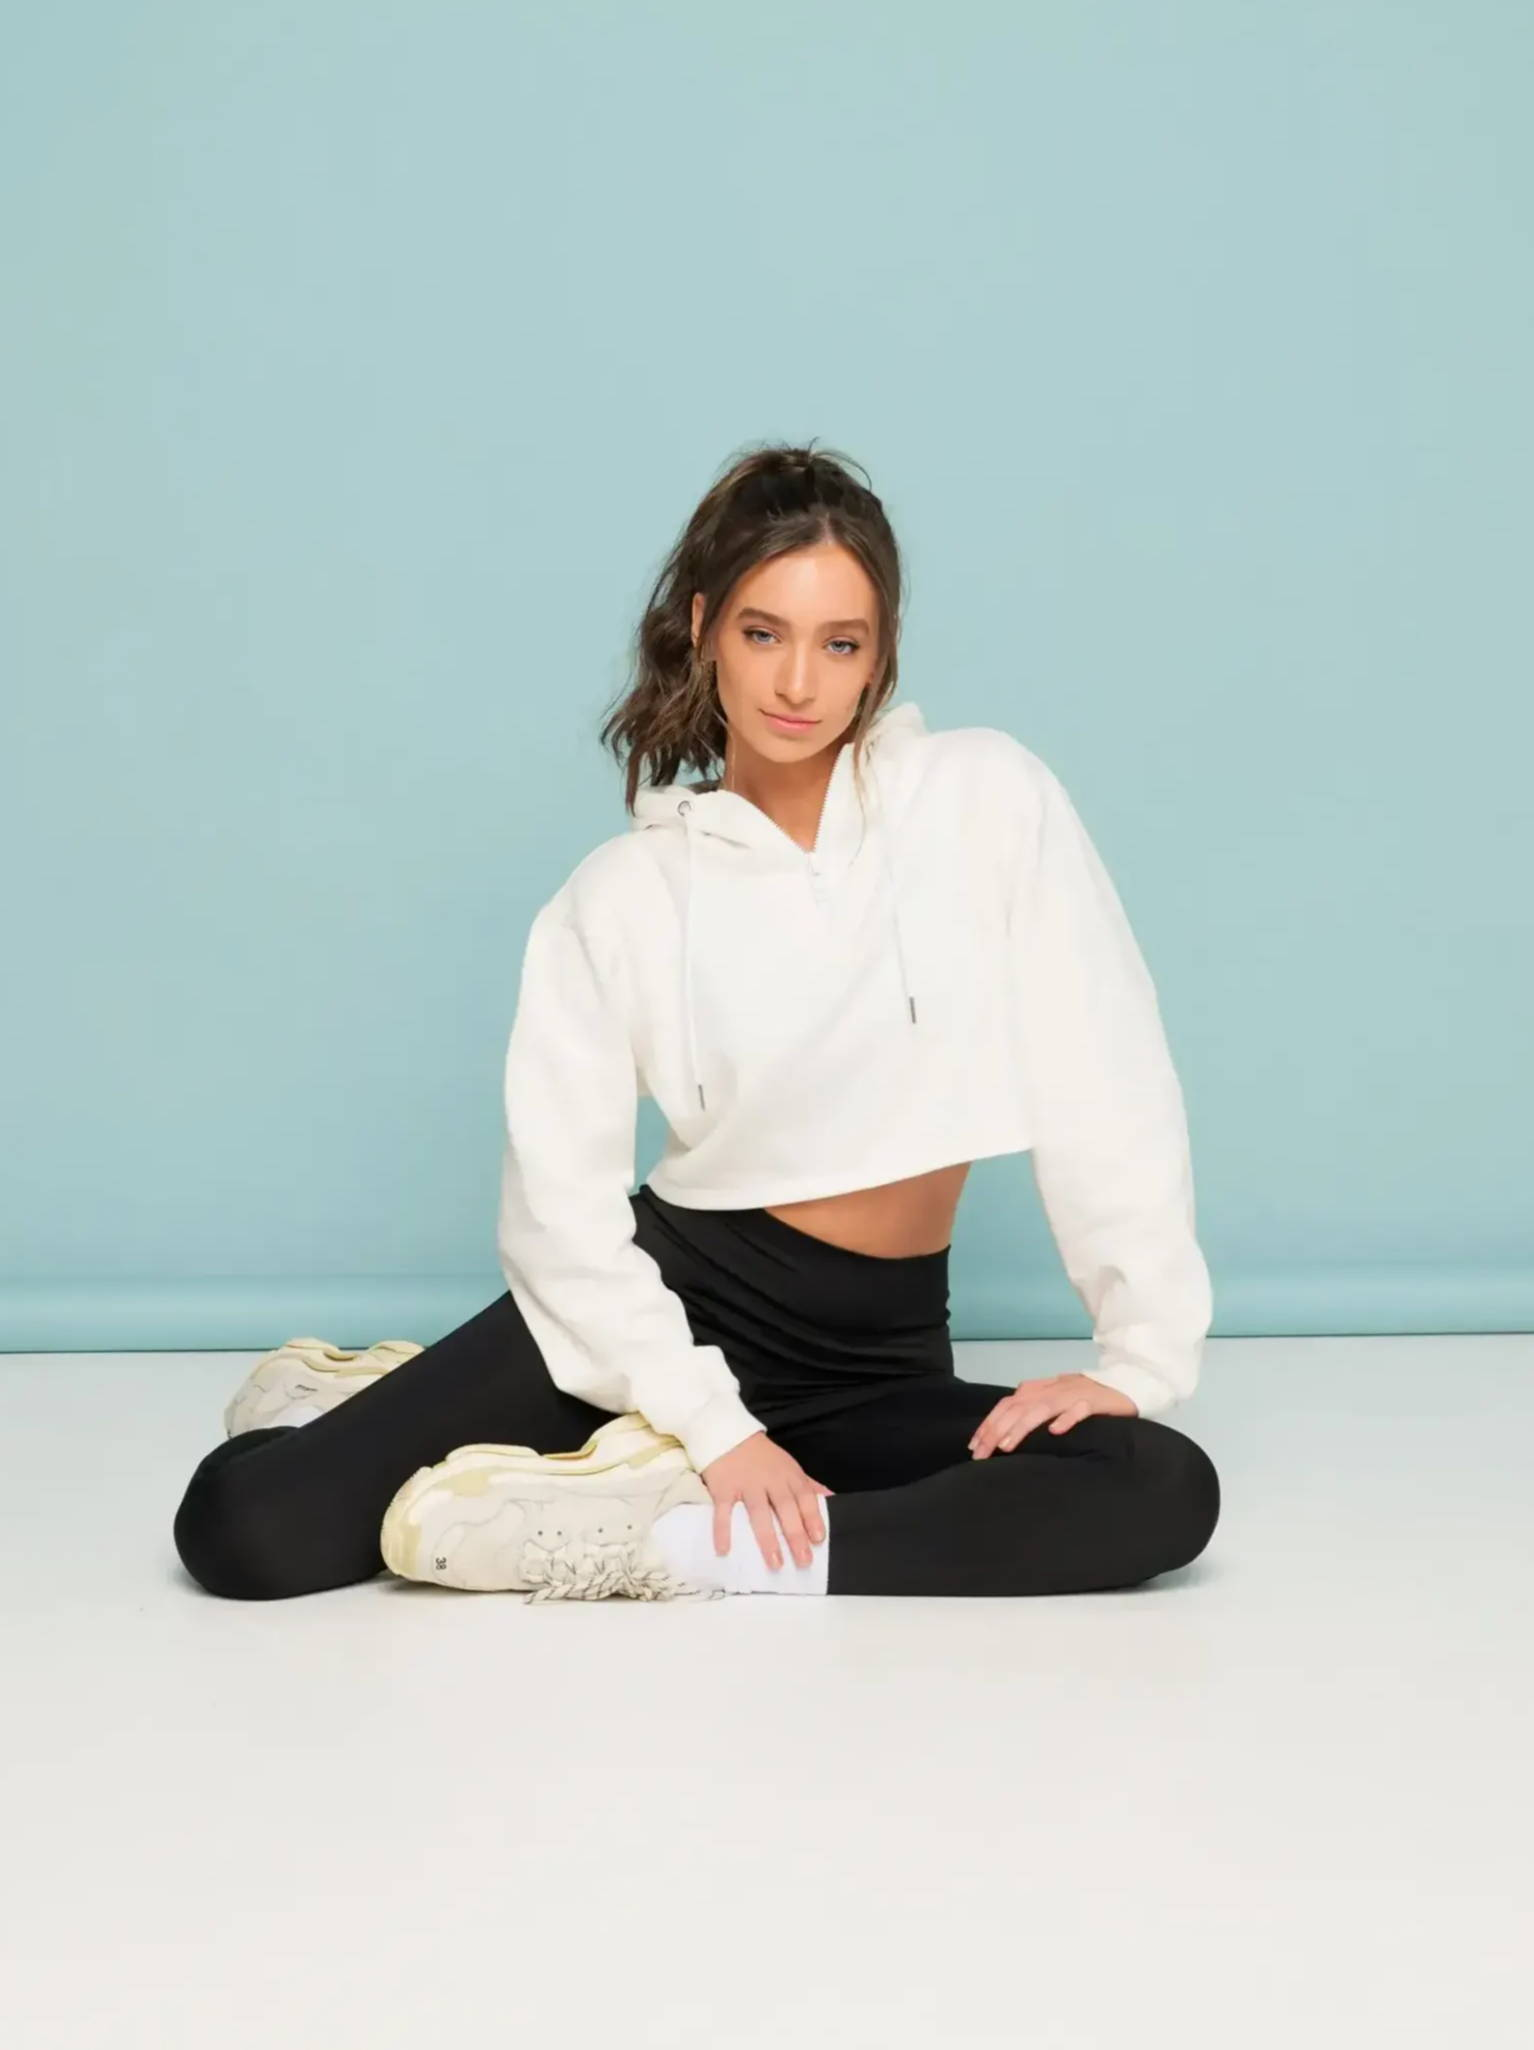 blank clothing activewear